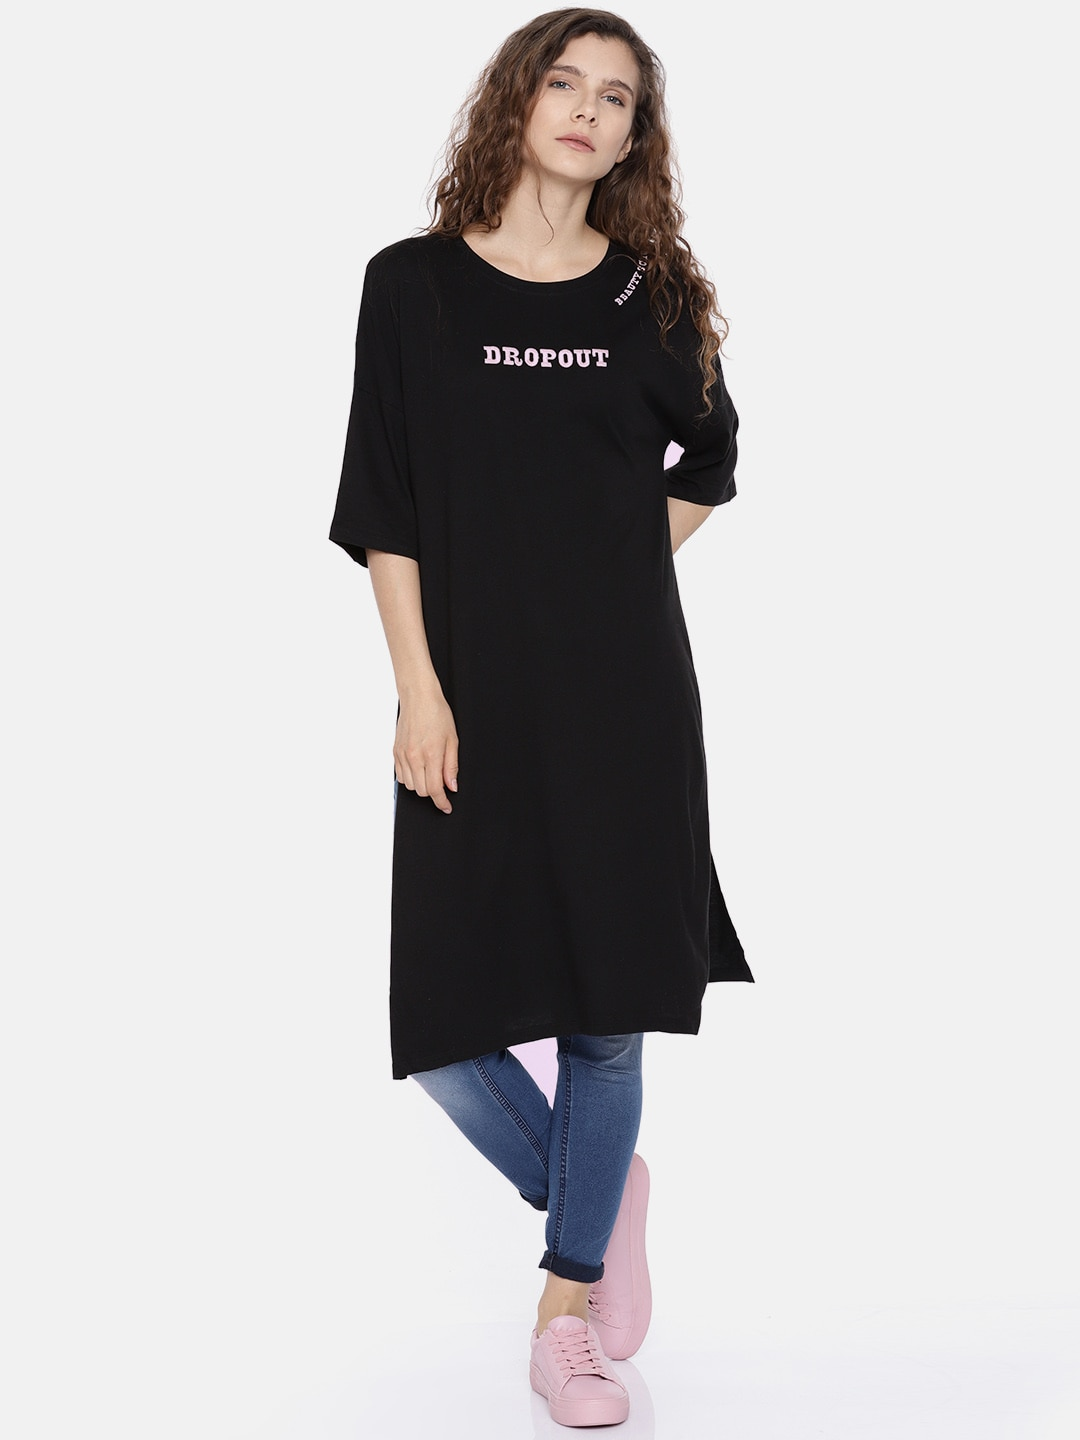 48f33d8b39d ONLY - Buy from ONLY Online Store in India